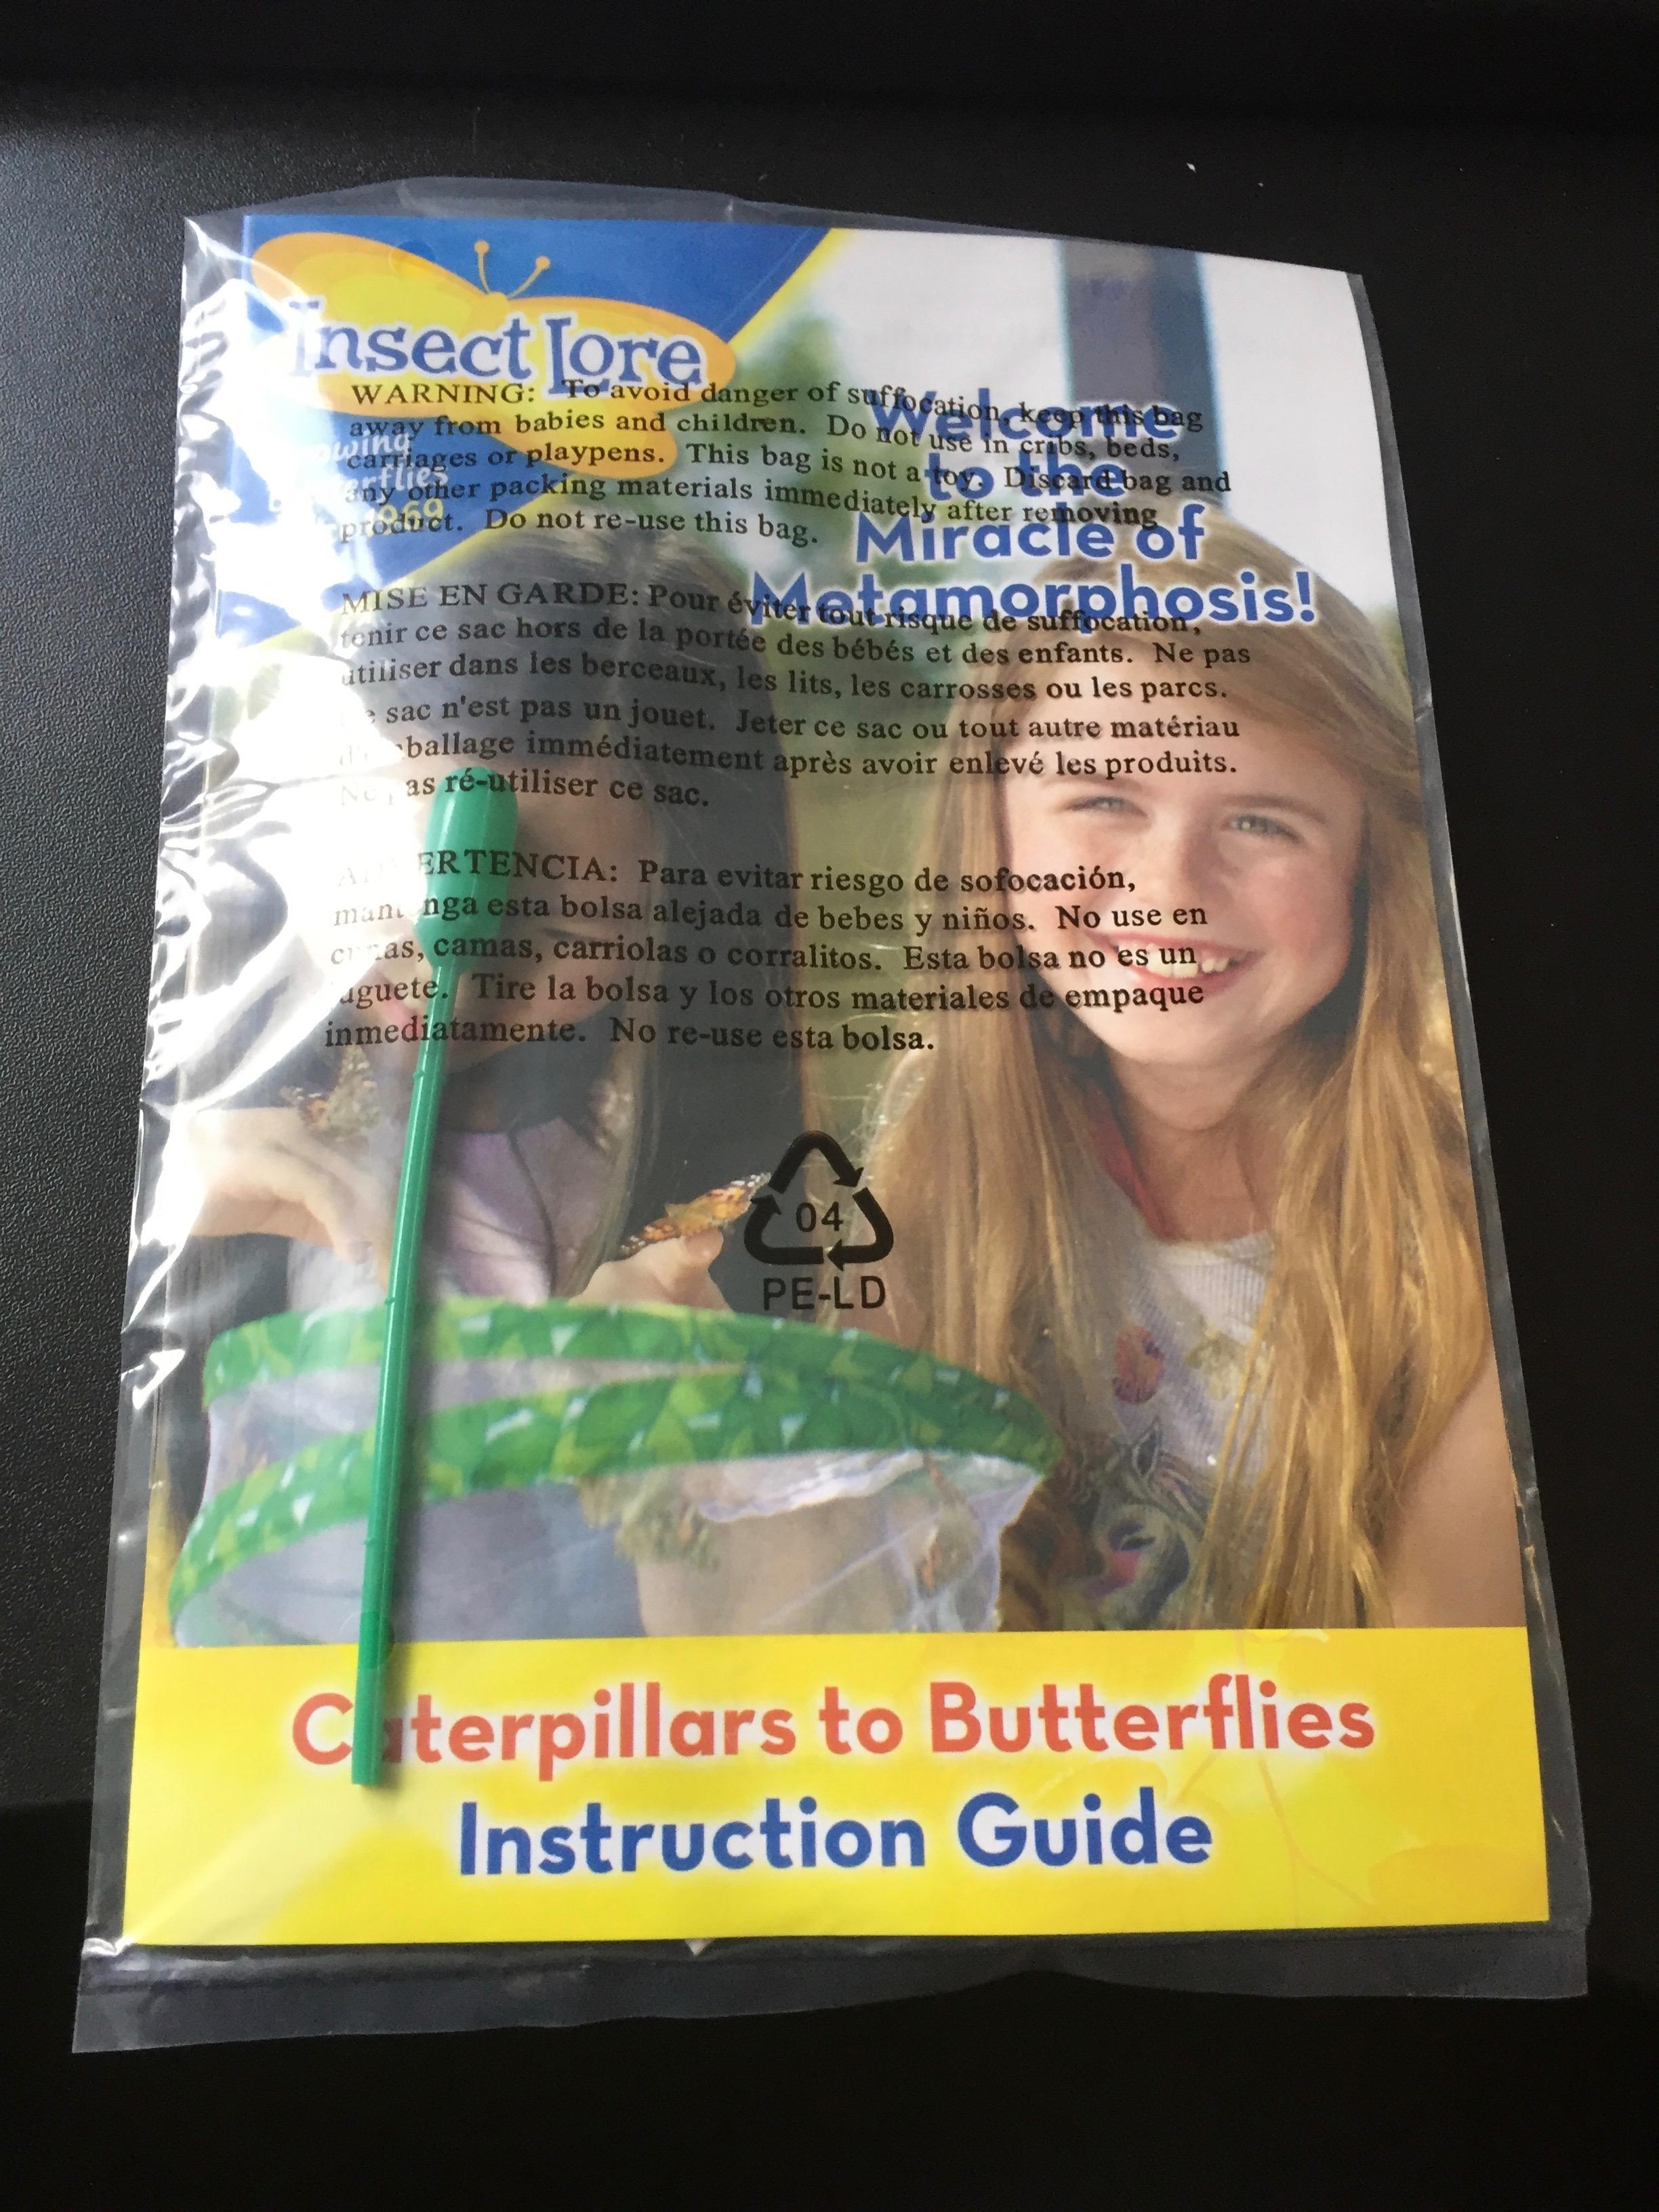 Instructions, and pipette